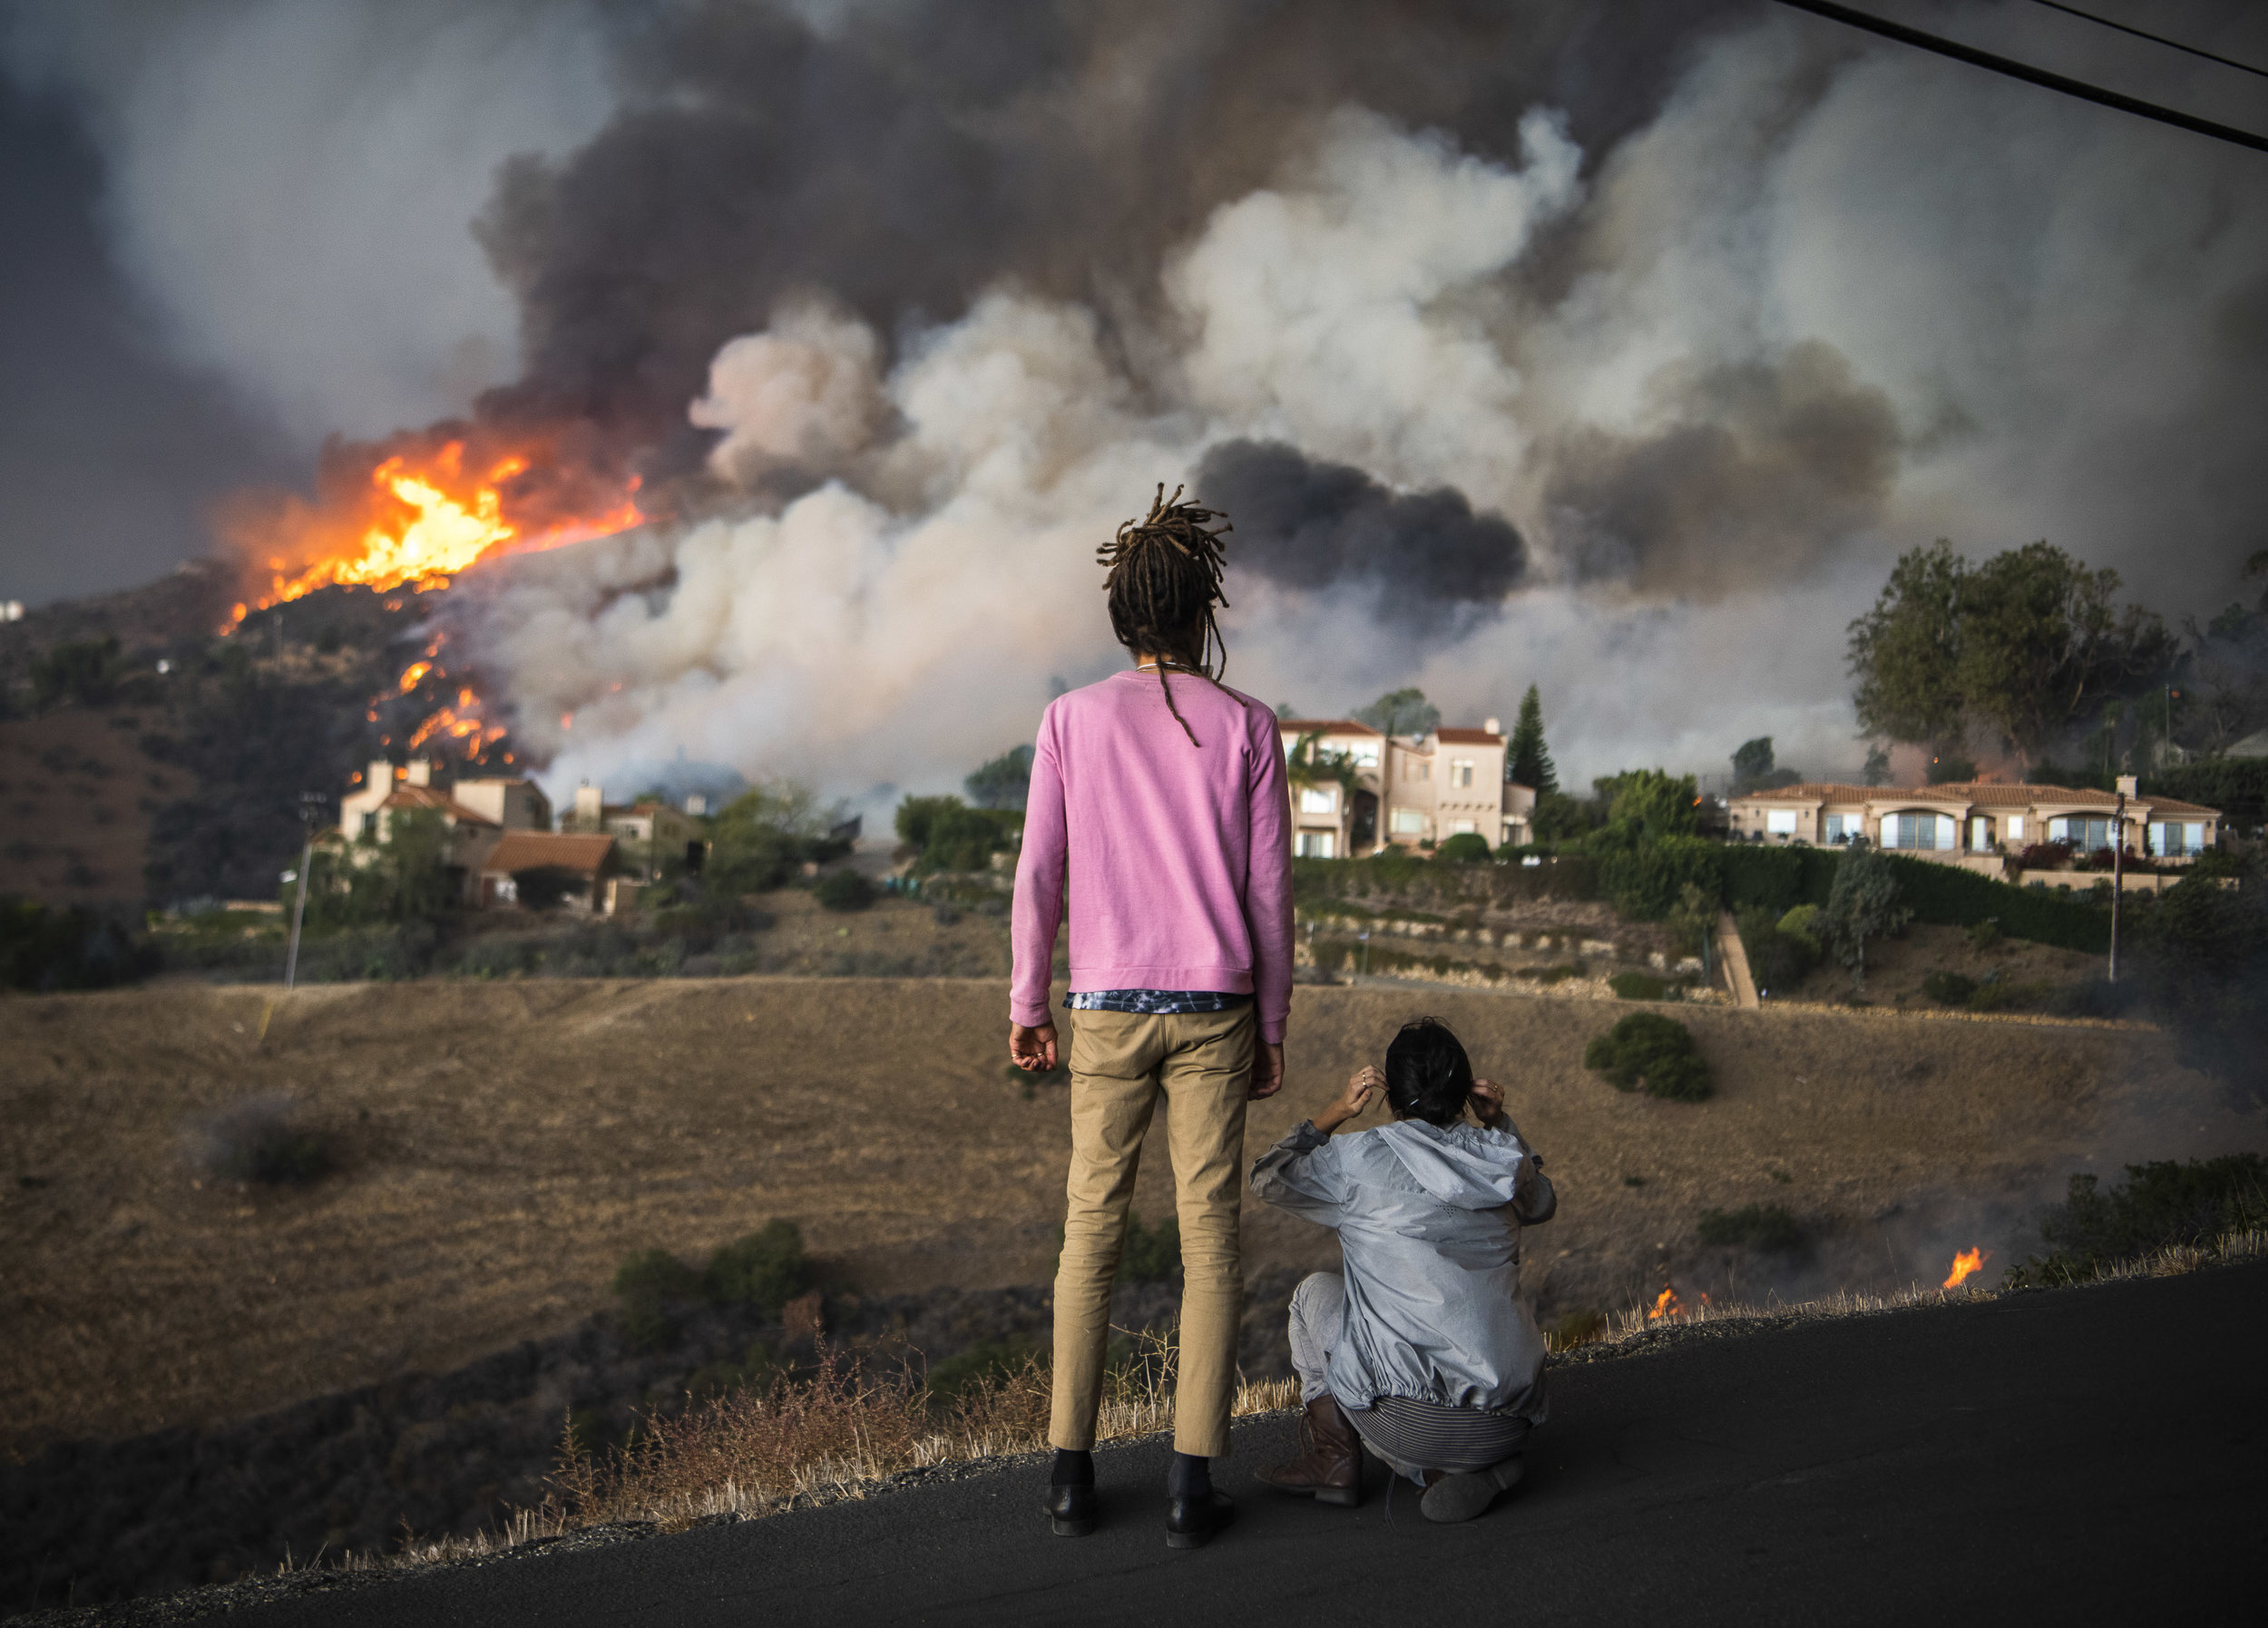 Malibu residents Jordan Pope and Sara Daoud watch in terror as flames engulf their home on Las Trancas Canyon Road as the Woolsey Fire burns through in Malibu Friday November 9th. Minutes later the area was engulfed by a rotating column of fire. Miraculously the home survived while structures around it were destroyed.